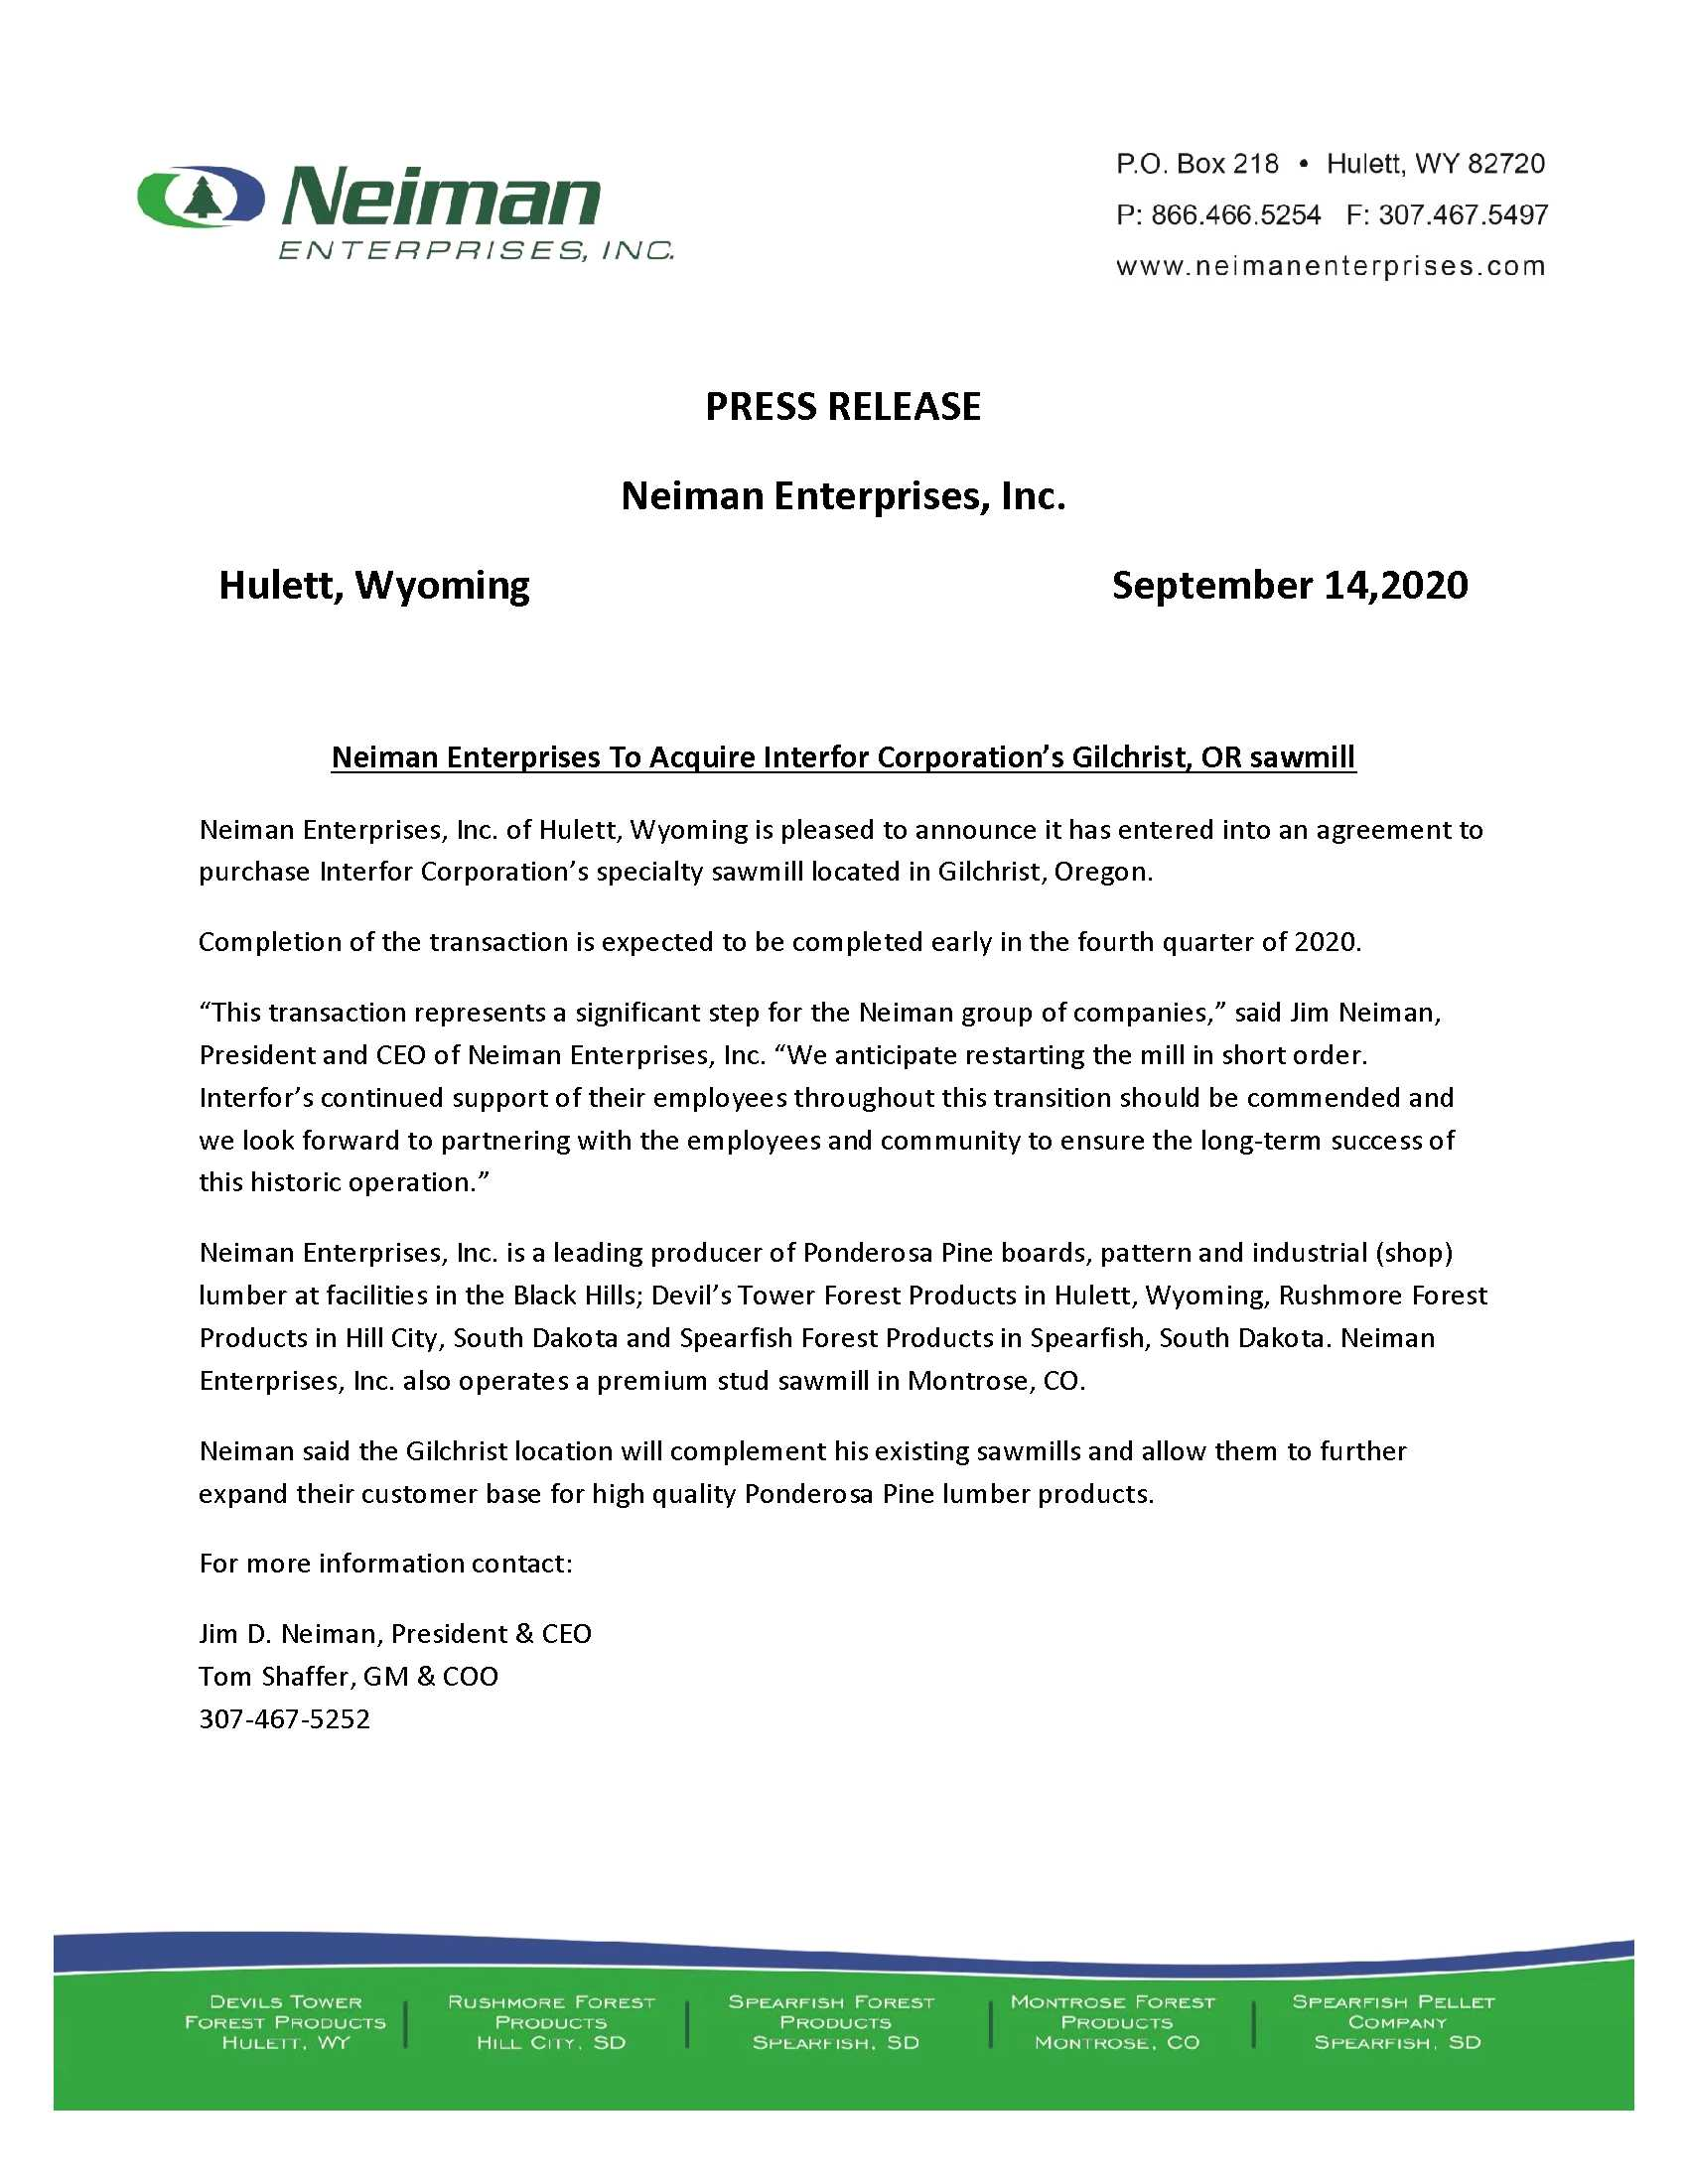 Neiman Enterprises-Gilchrist Press Release 9-14-20